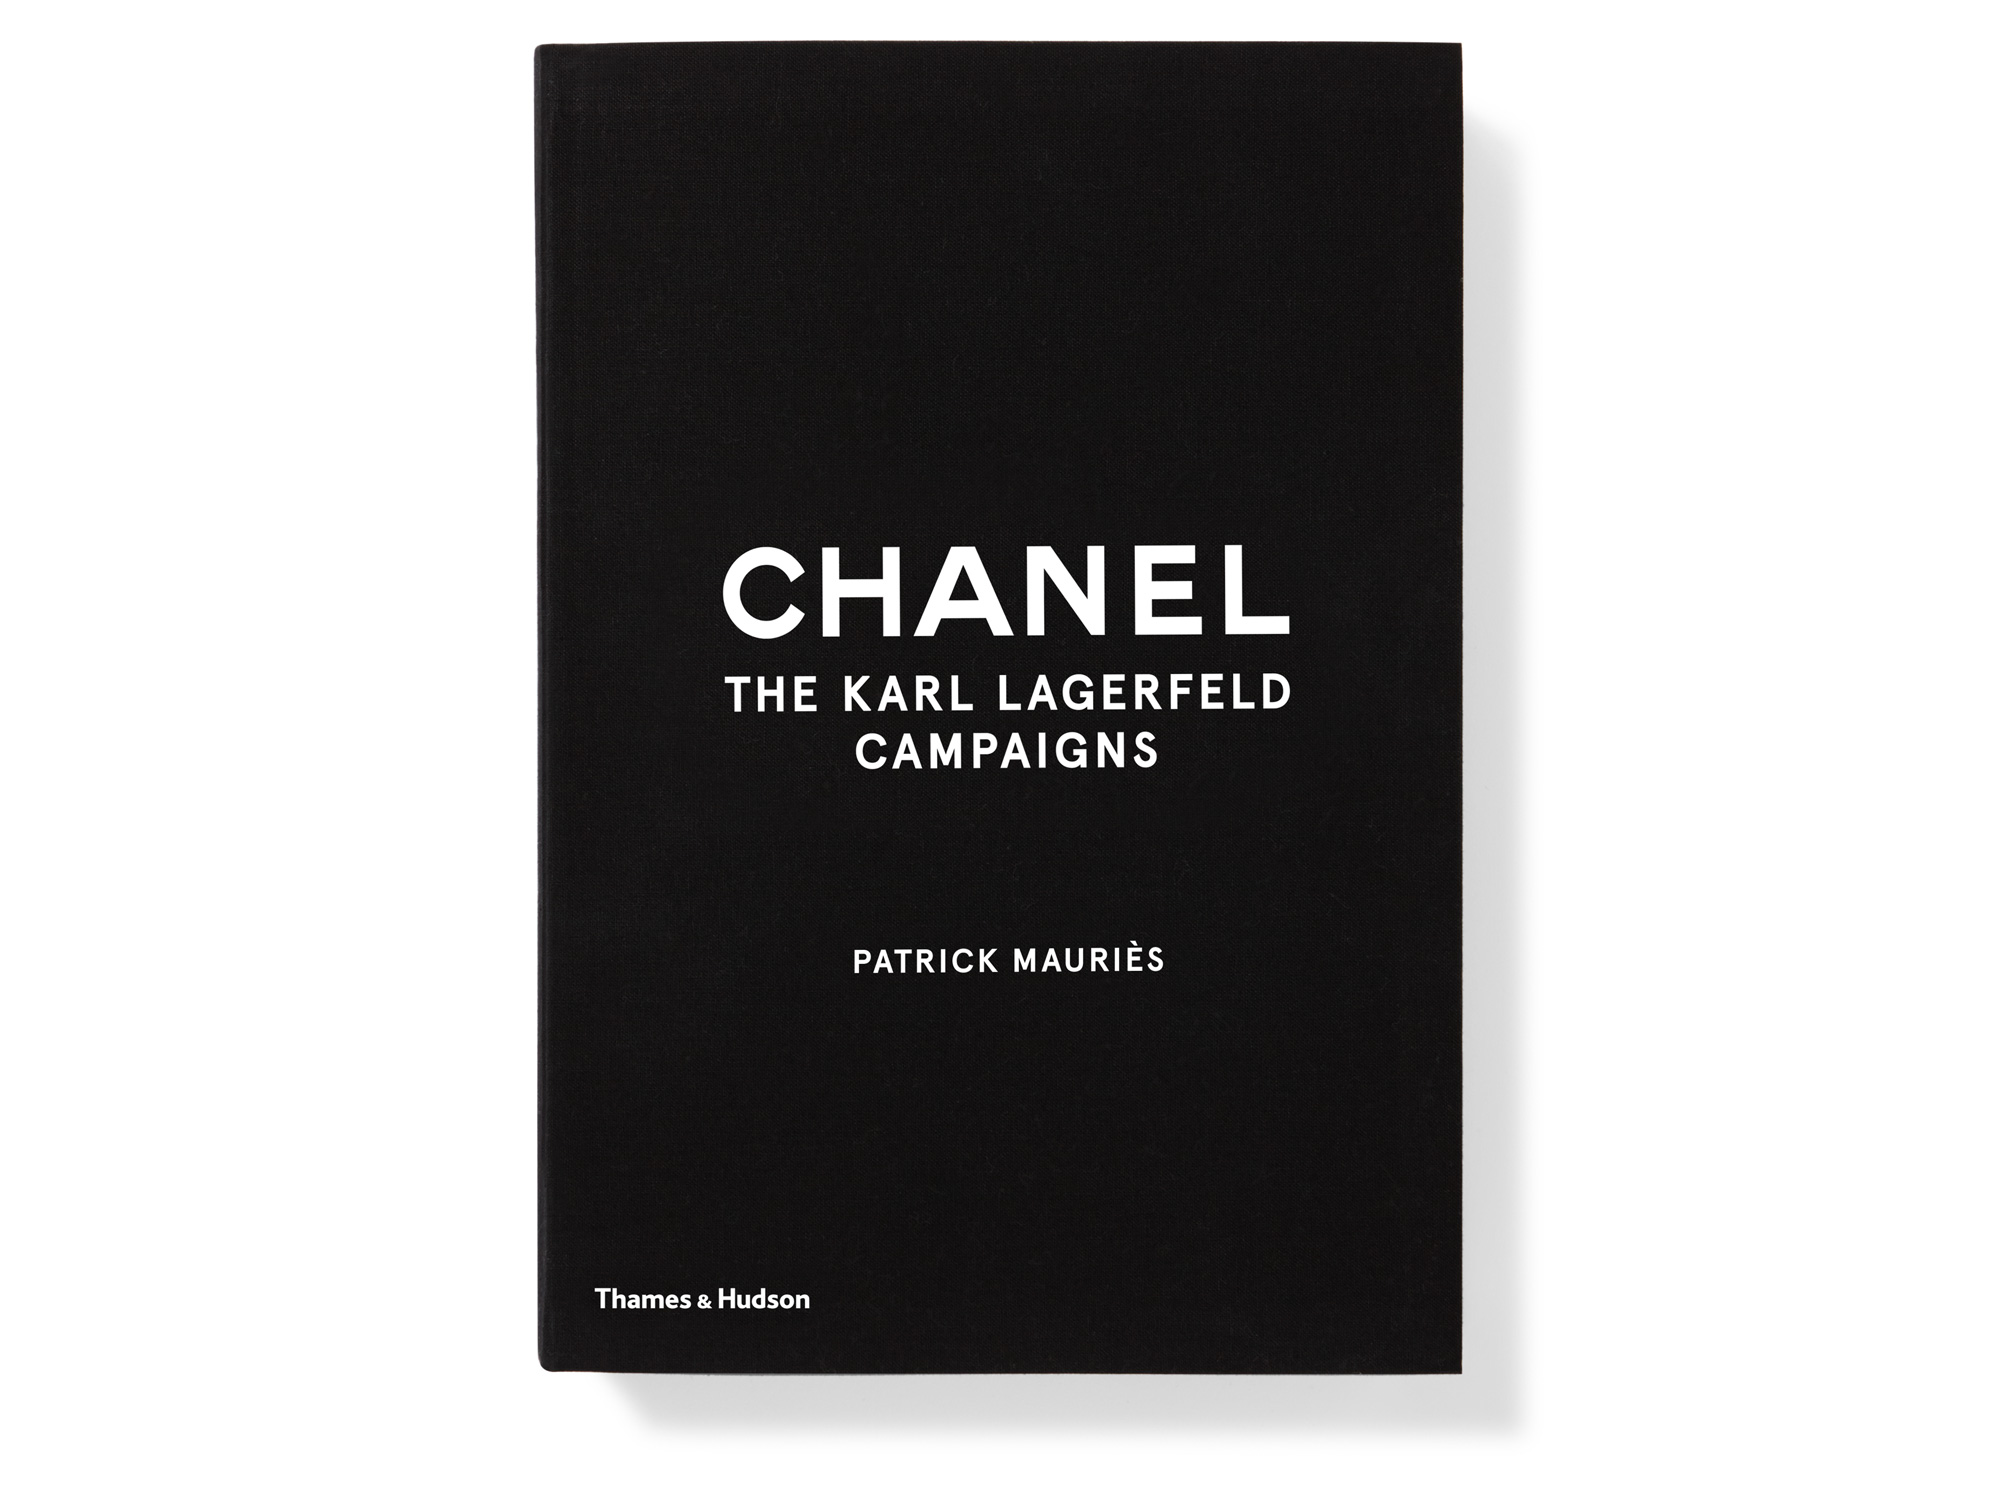 Daniel Baer – Chanel&nbsp;&ndash; The Lagerfeld Campaigns. <i>Chanel</i> 2